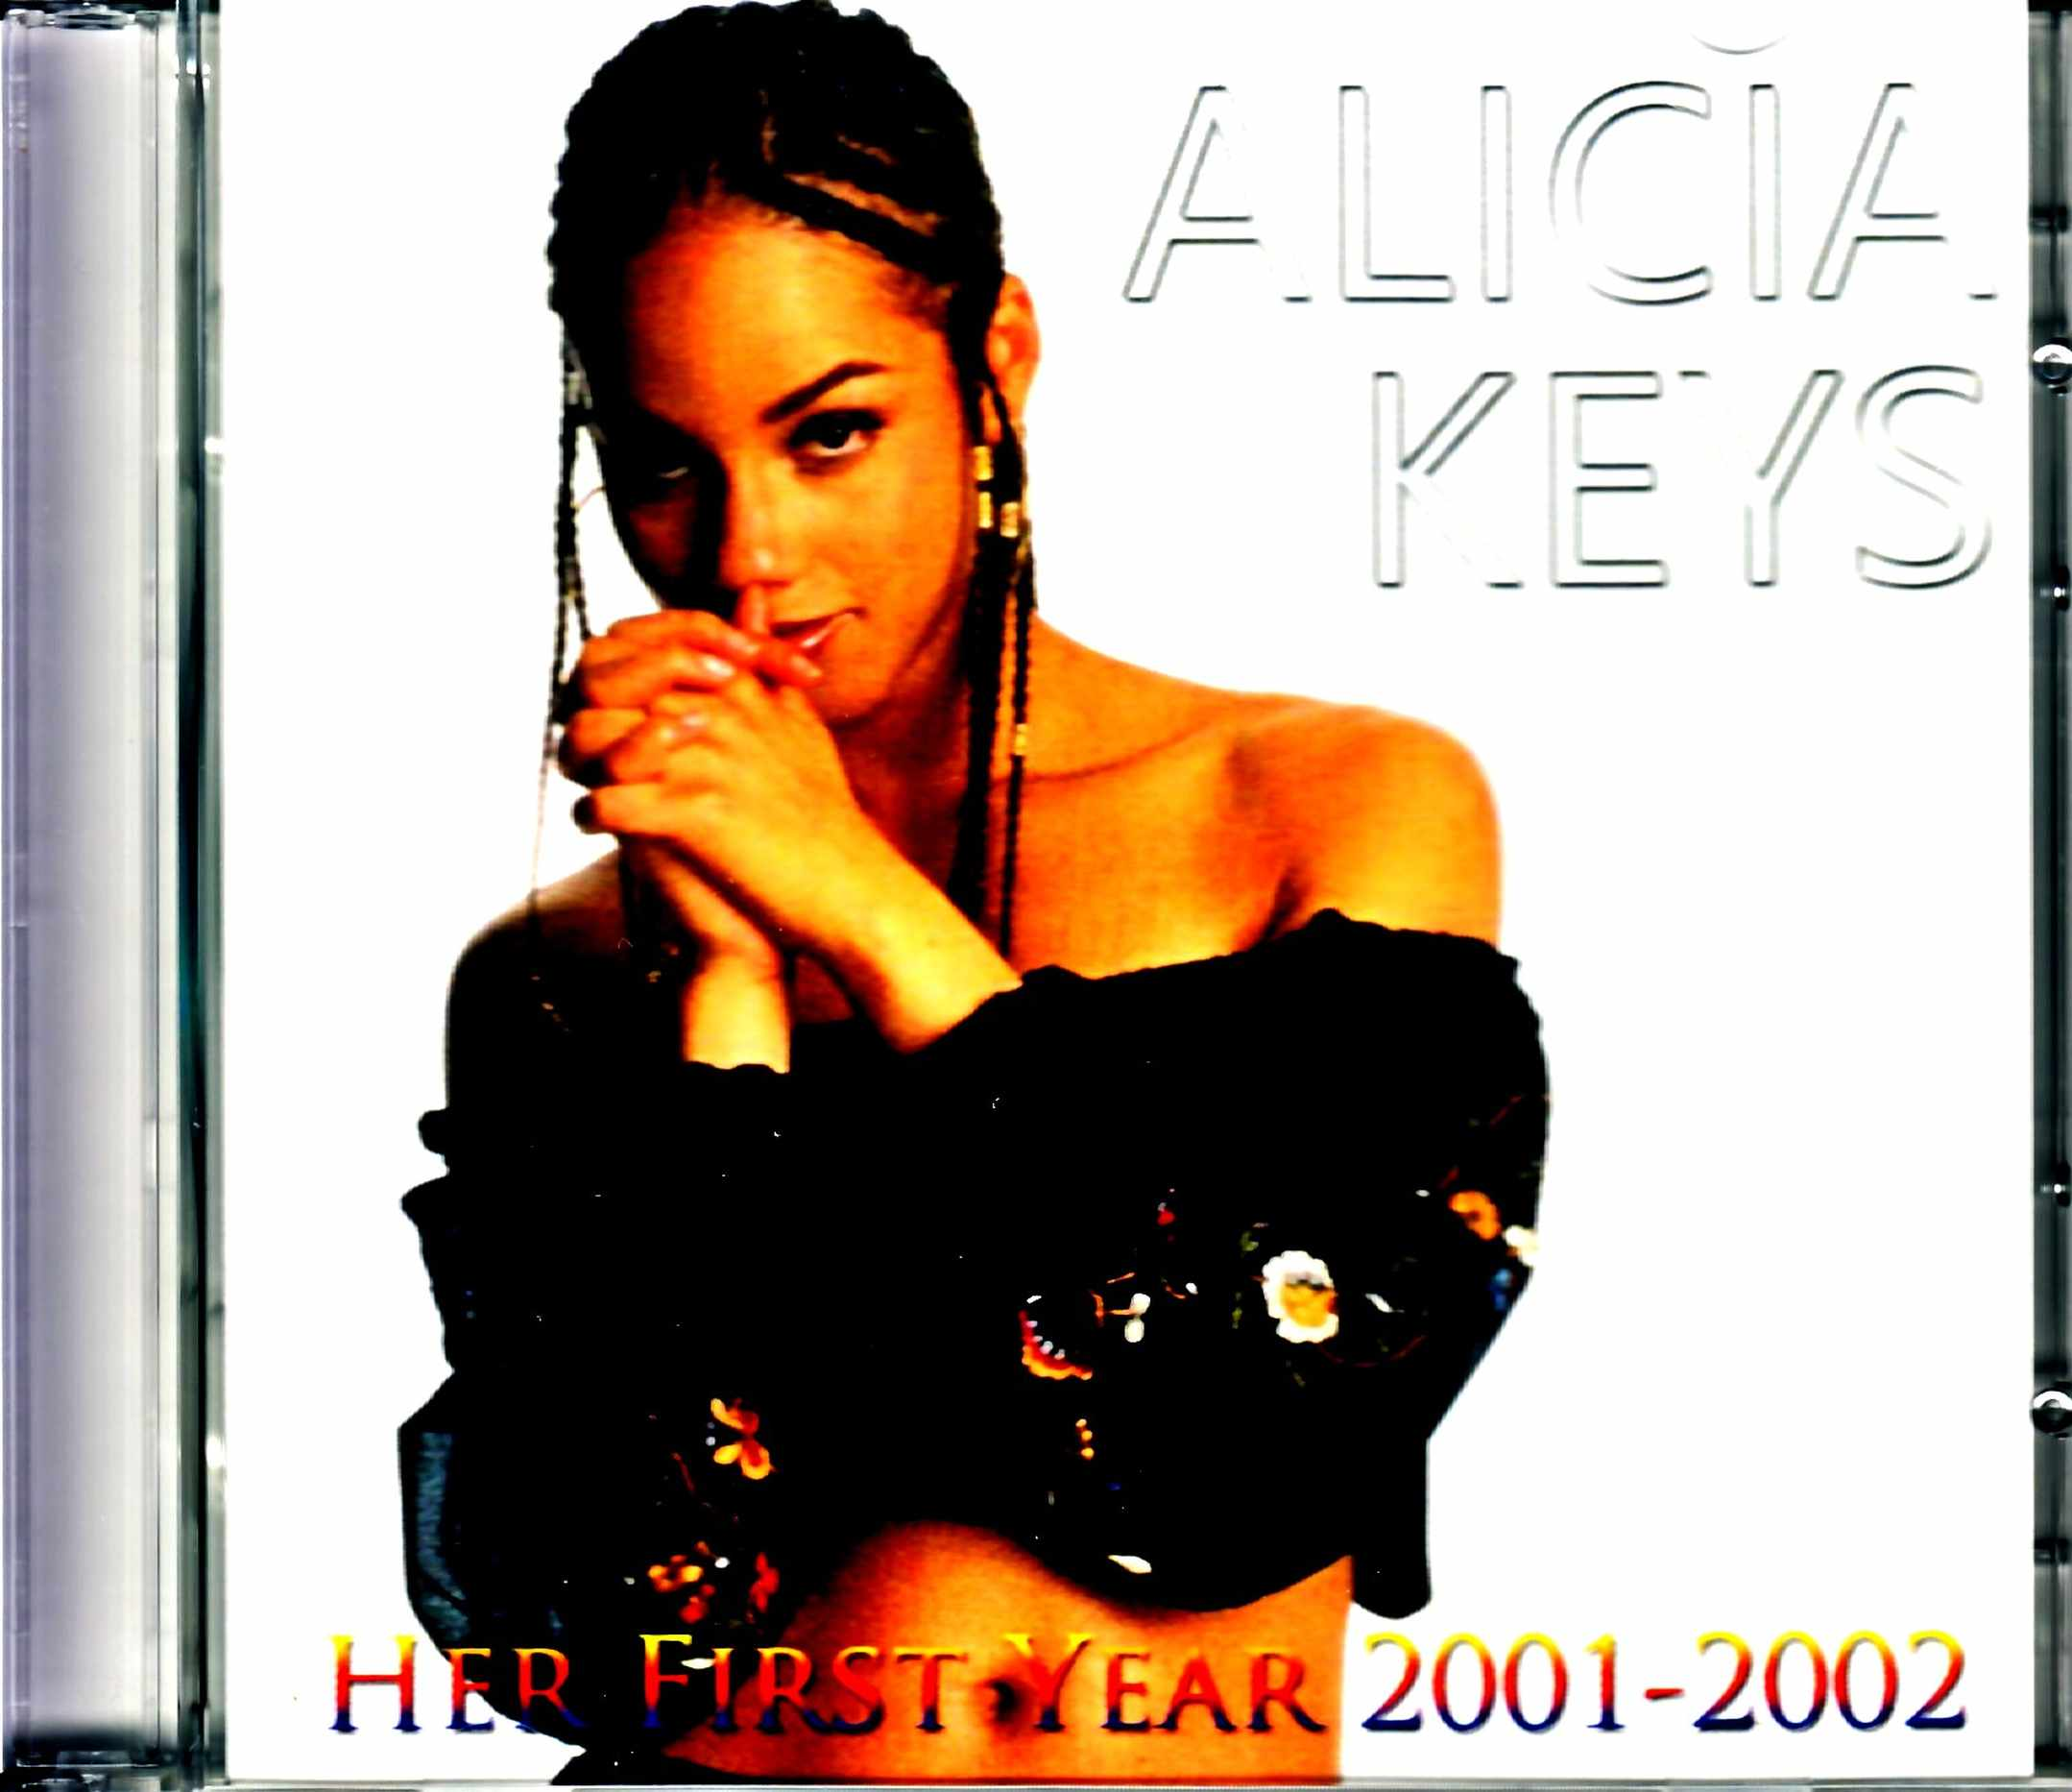 Alicia Keys アリシア・キース/Early Years Compilation 2001-2002 S & V